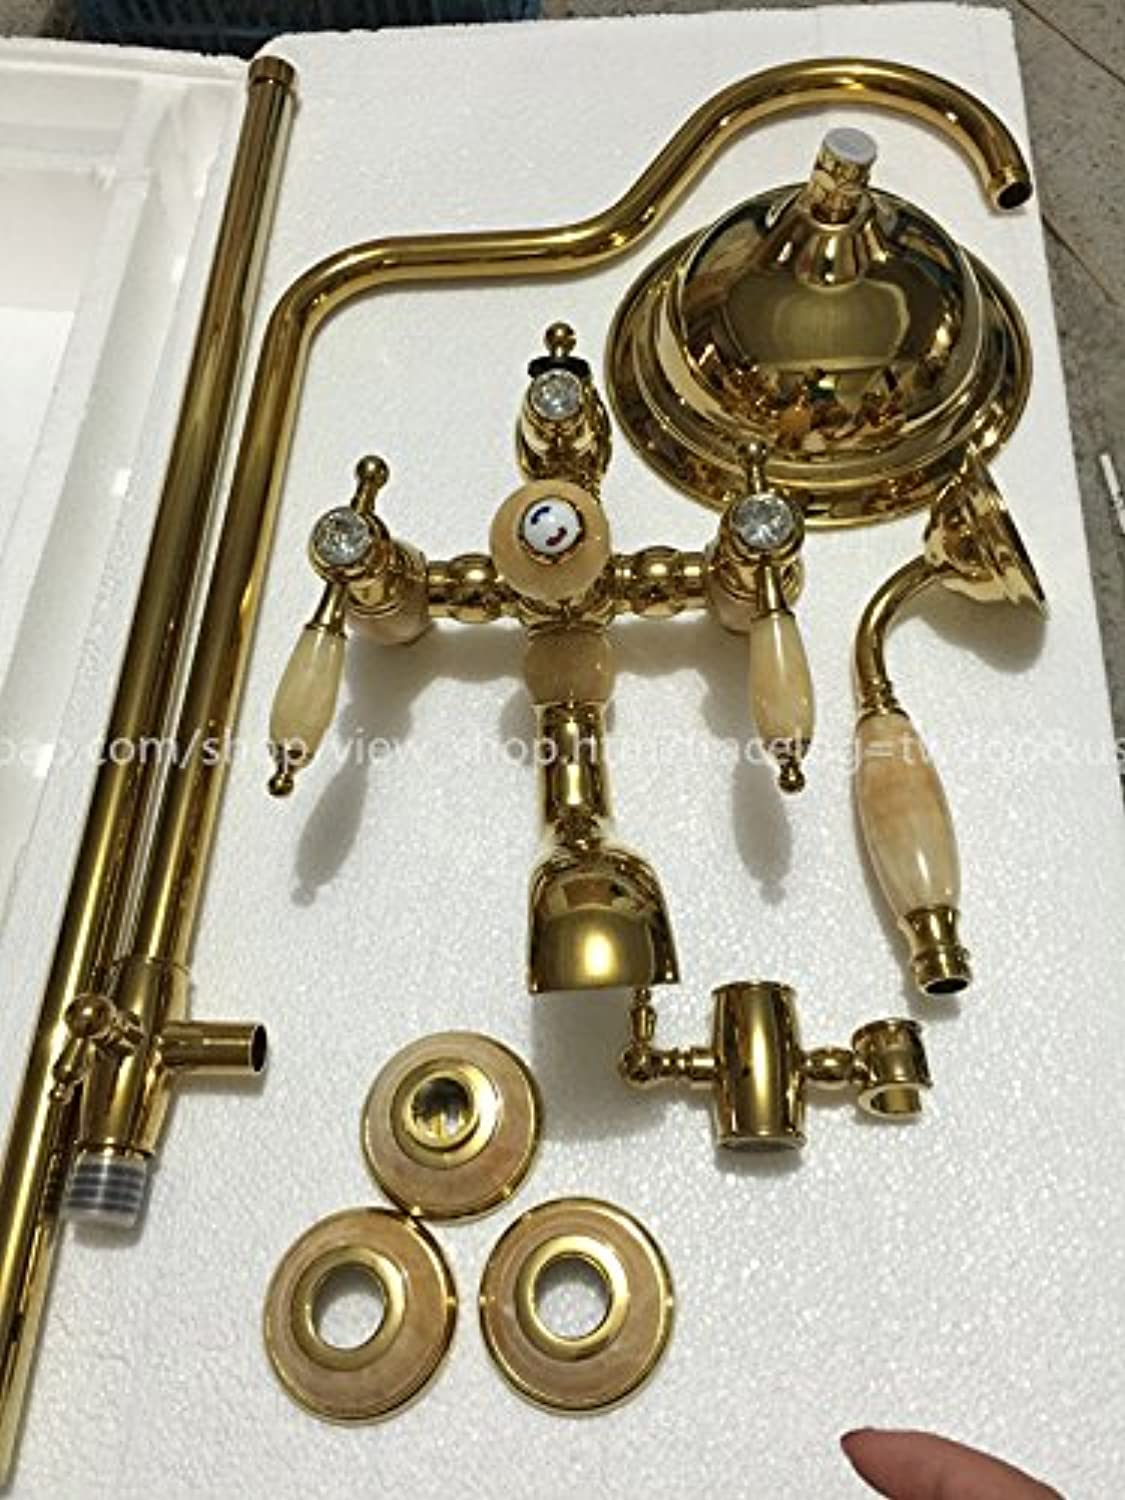 SUHANG European Style Gold Natural Jade Shower Set, All Copper Gold-Plated Hot and Cold Taps, Antique Bathroom Shower,